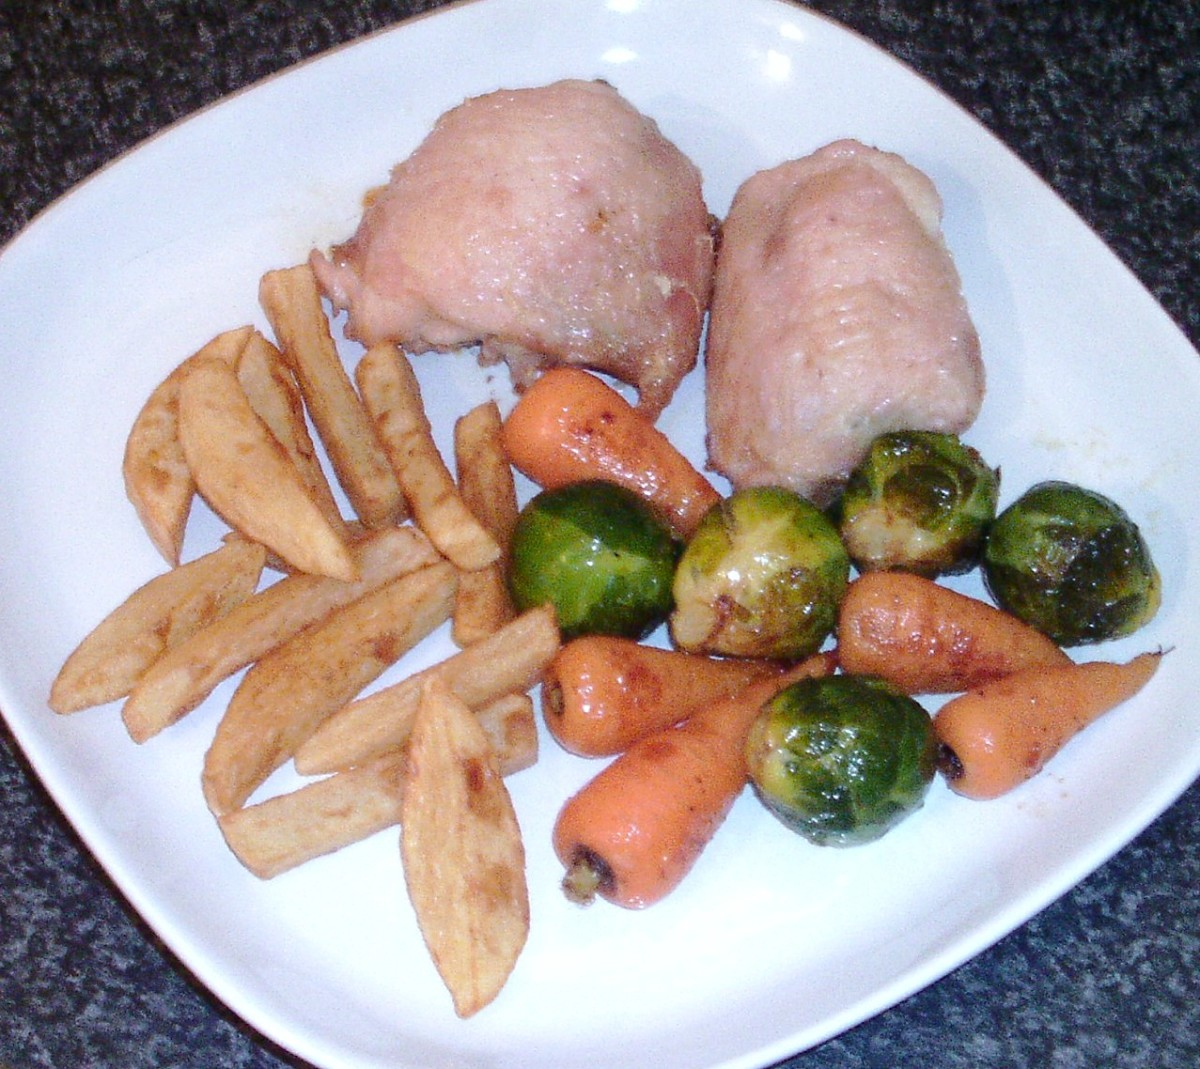 Roast chicken thighs with sprouts and carrots served with homemade chips